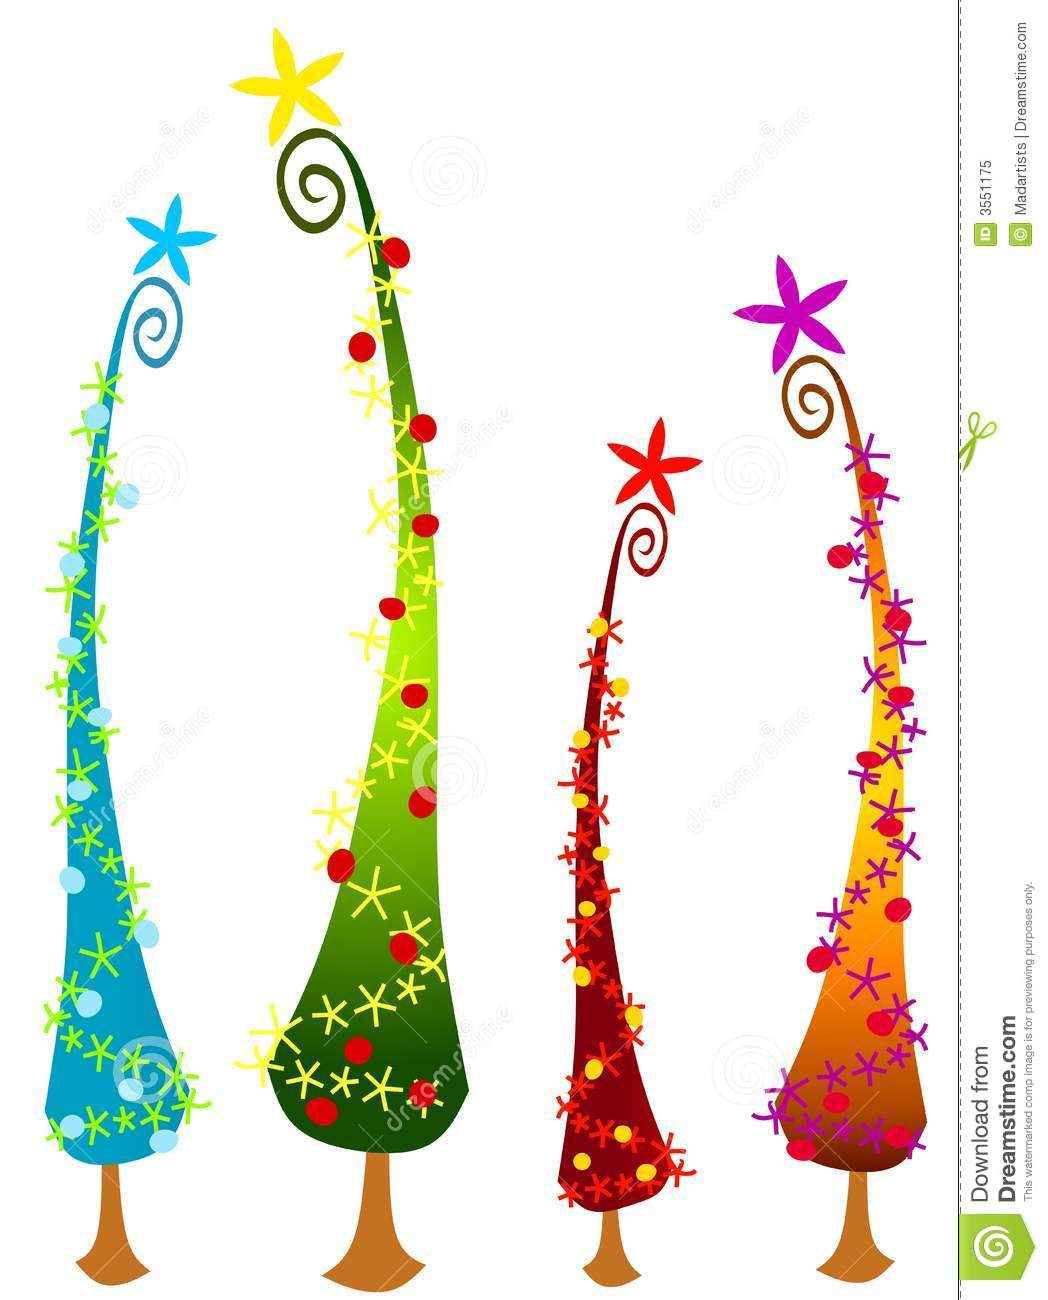 Whoville Christmas Tree Clipart - Clipart Kid